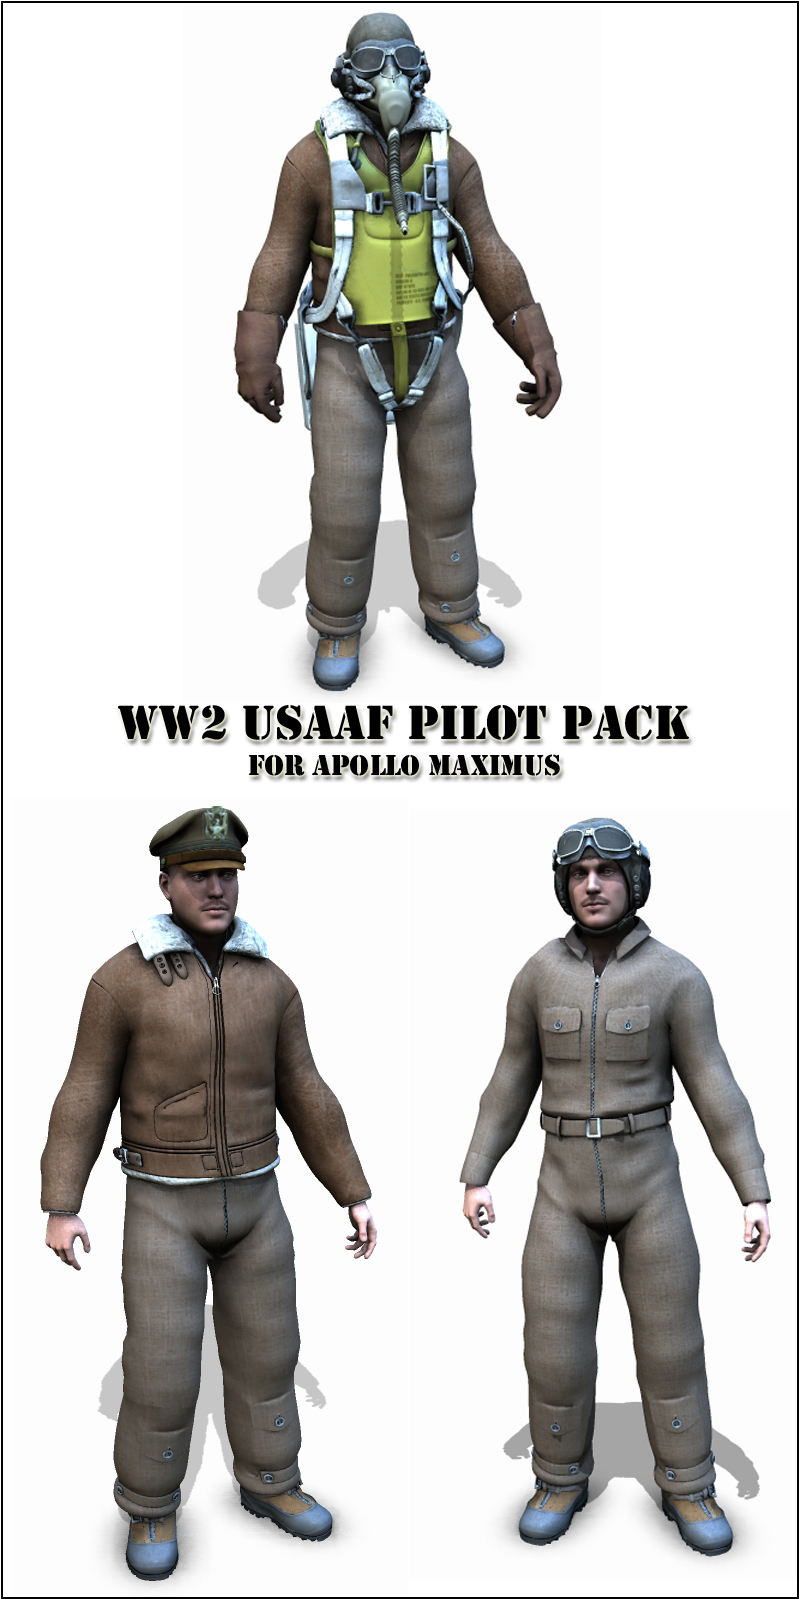 WW2 USAAF pilot pack